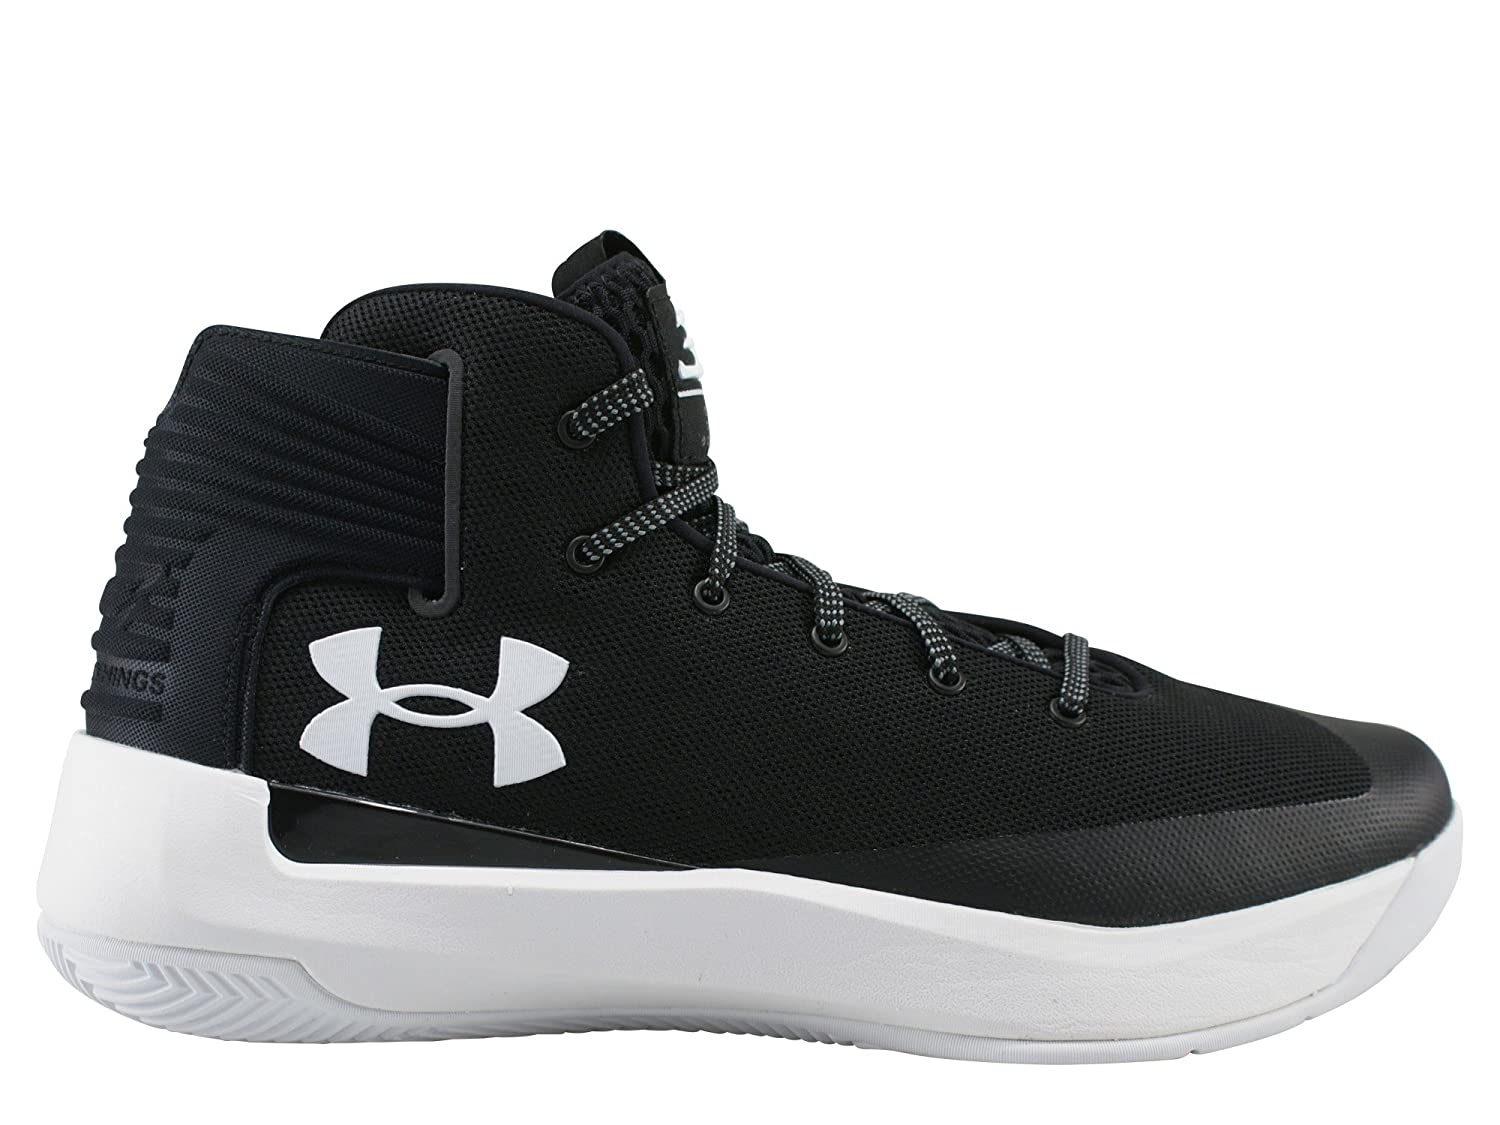 3ee06aeb54b Amazon.com | Under Armour Men's Curry 3 Basketball Shoes | Basketball